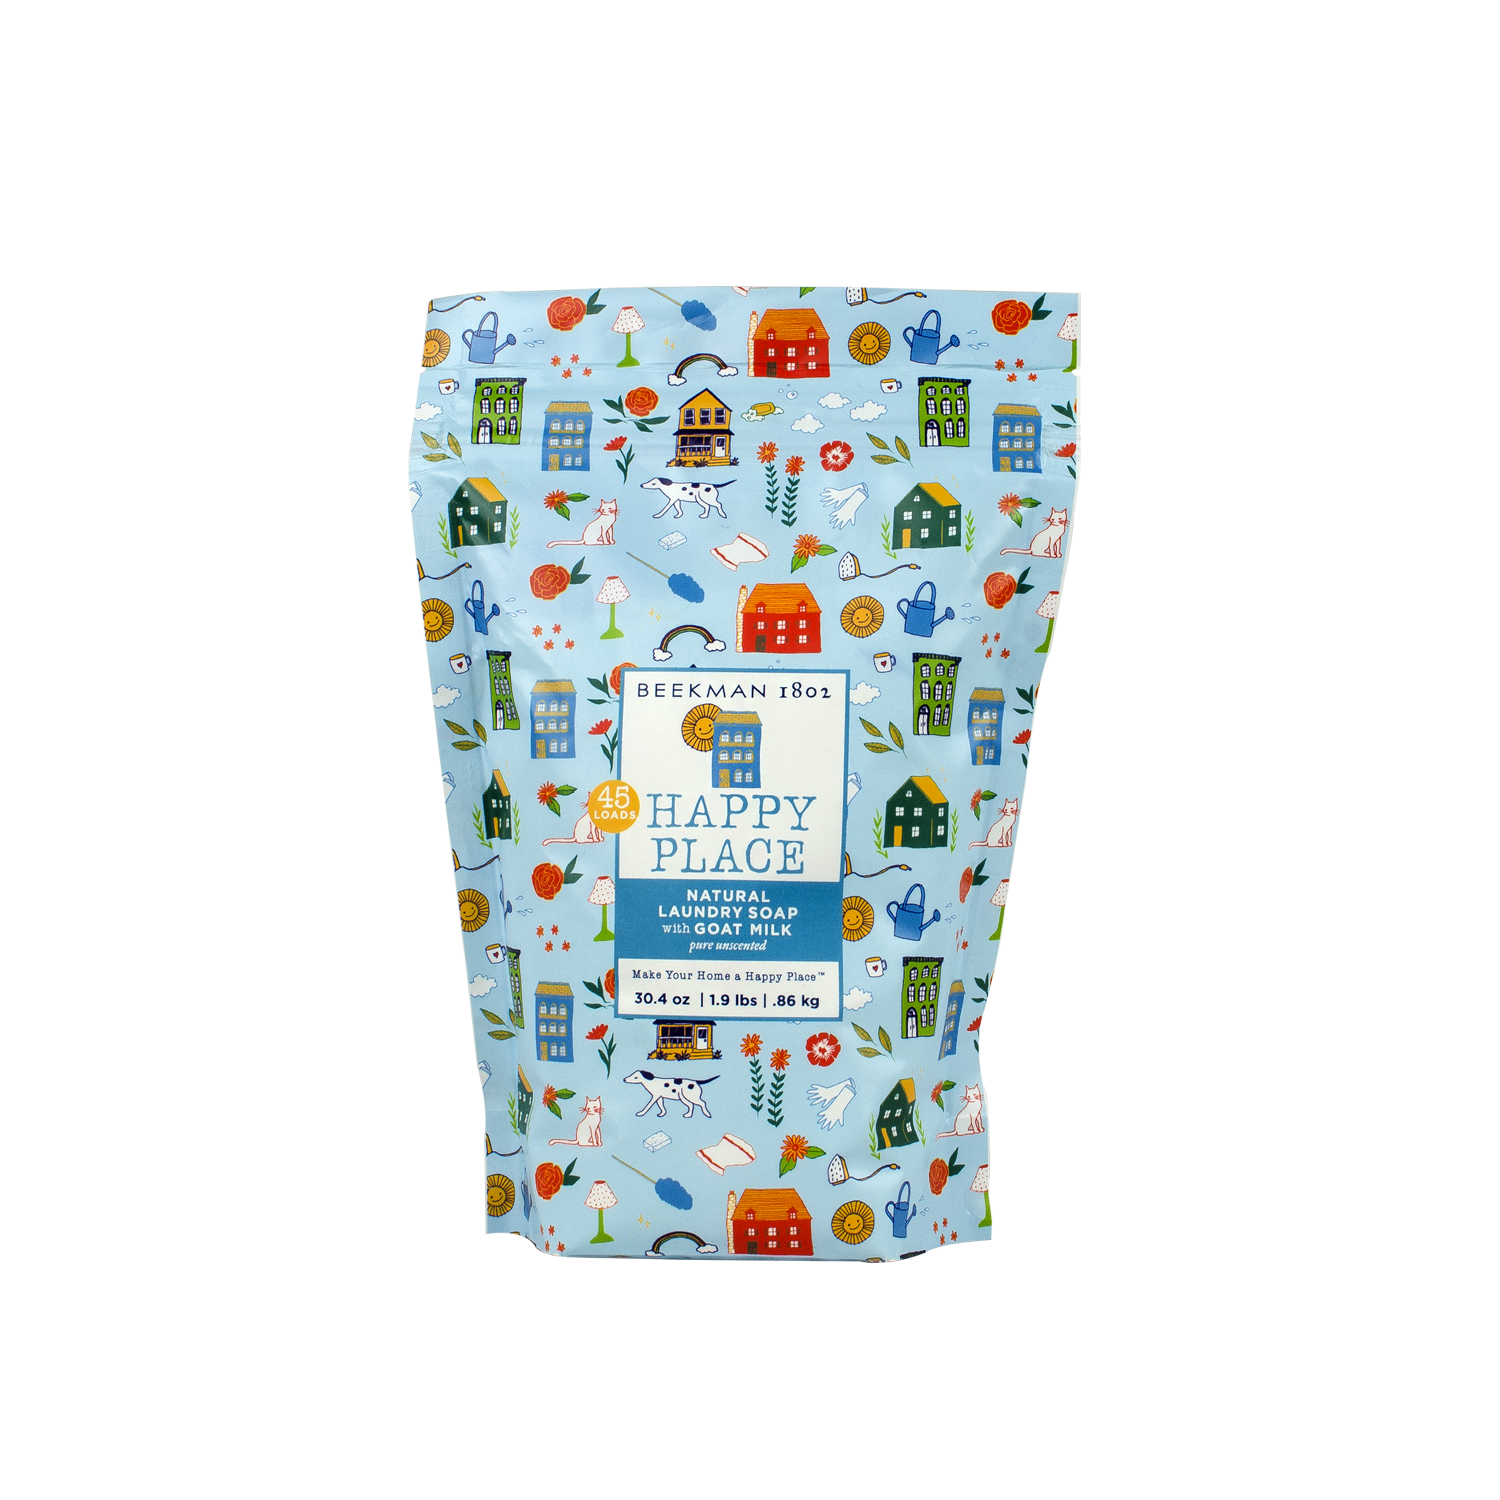 Happy Place Pure *Unscented* Goat Milk Laundry Soap - Resealable Bags